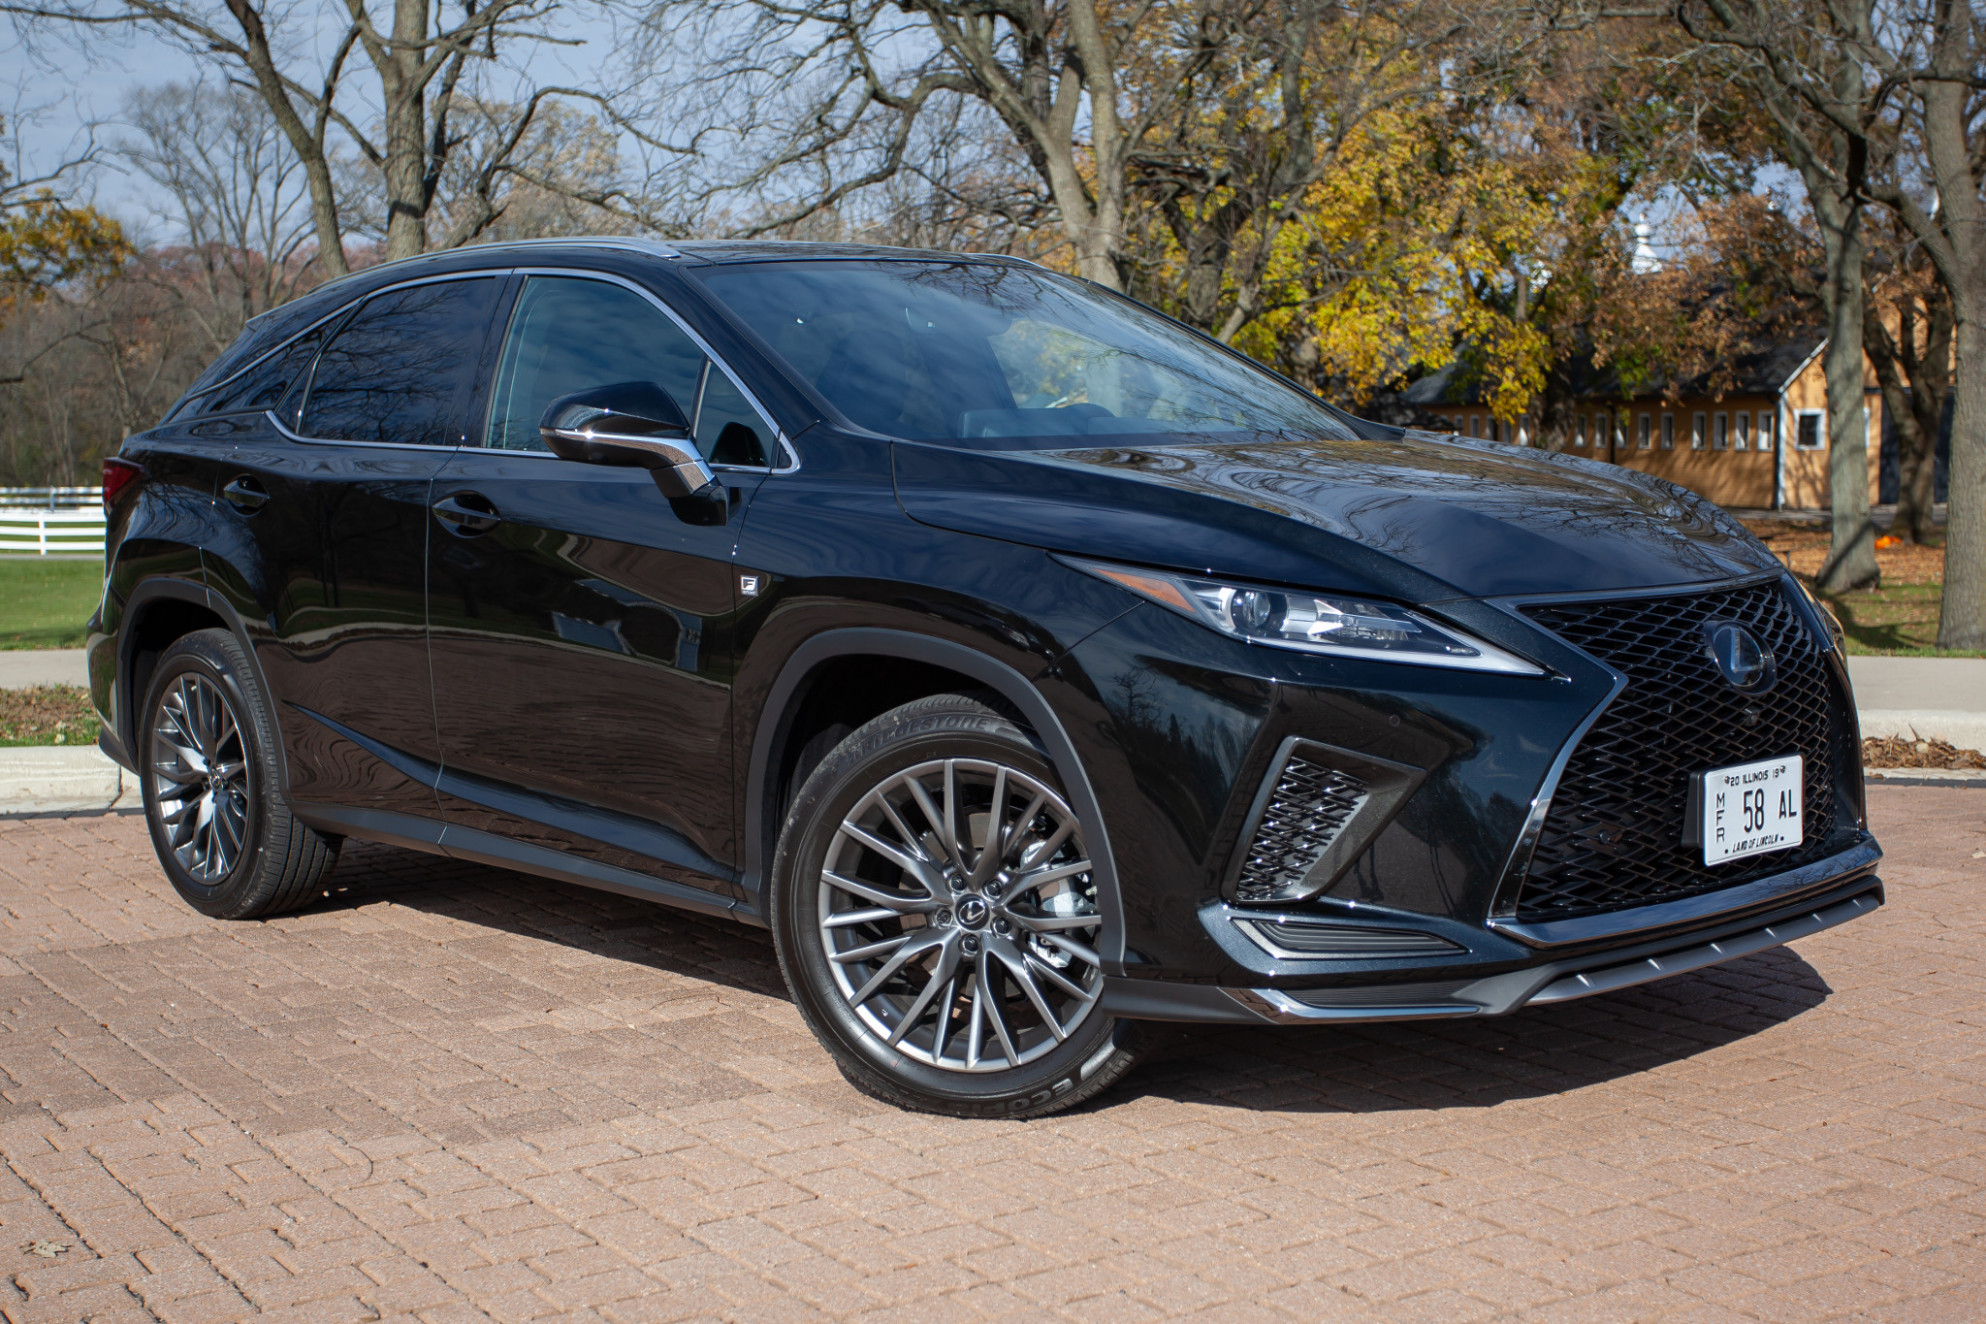 Lexus 8 RX SUV Family Brings Home Safety Awards, Falls Short on ..